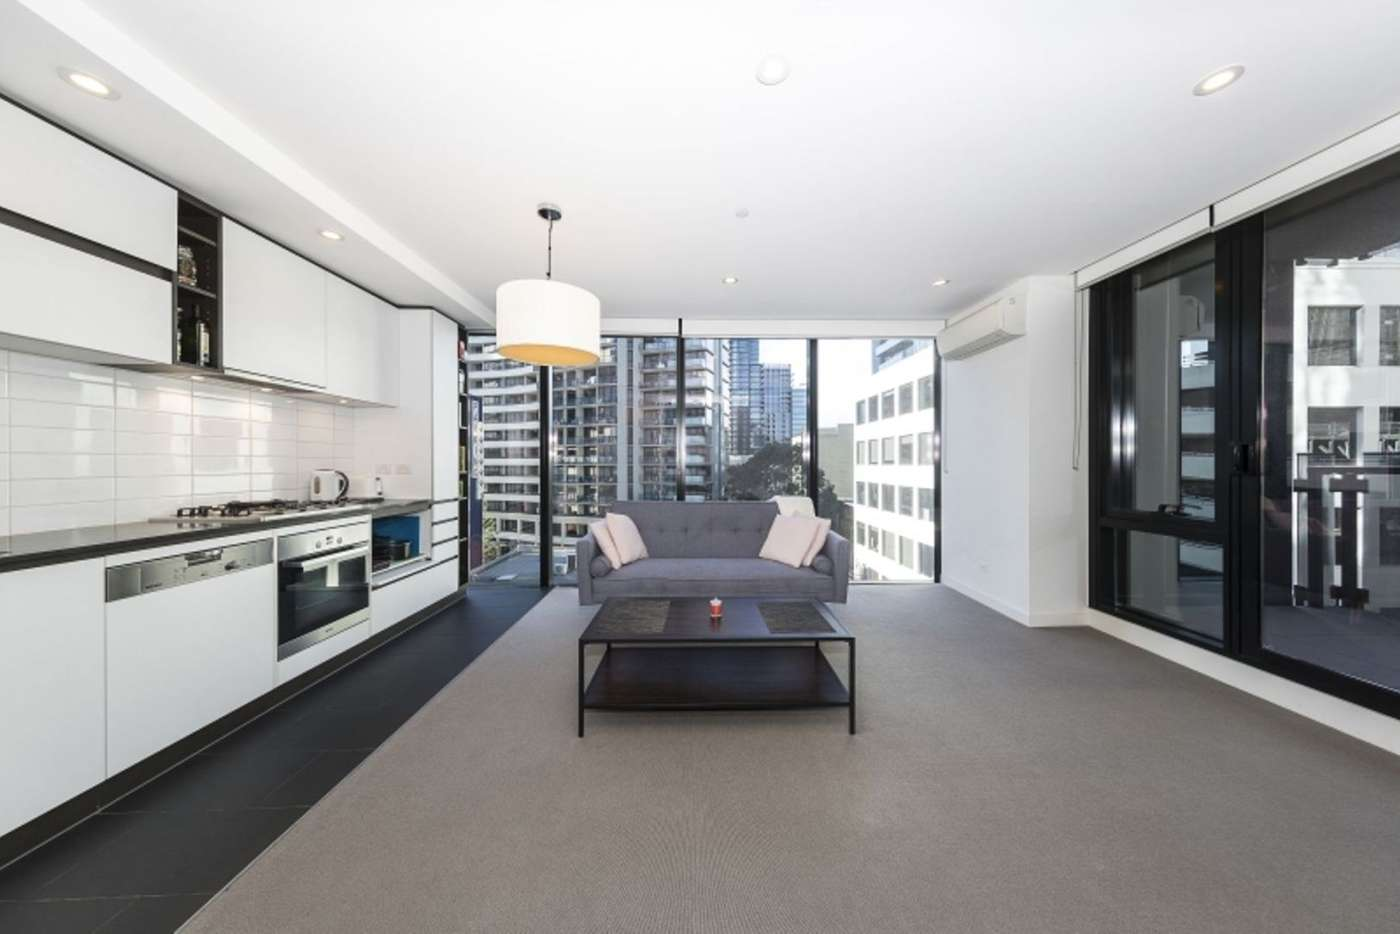 Main view of Homely apartment listing, 315/229 Toorak Road, South Yarra VIC 3141